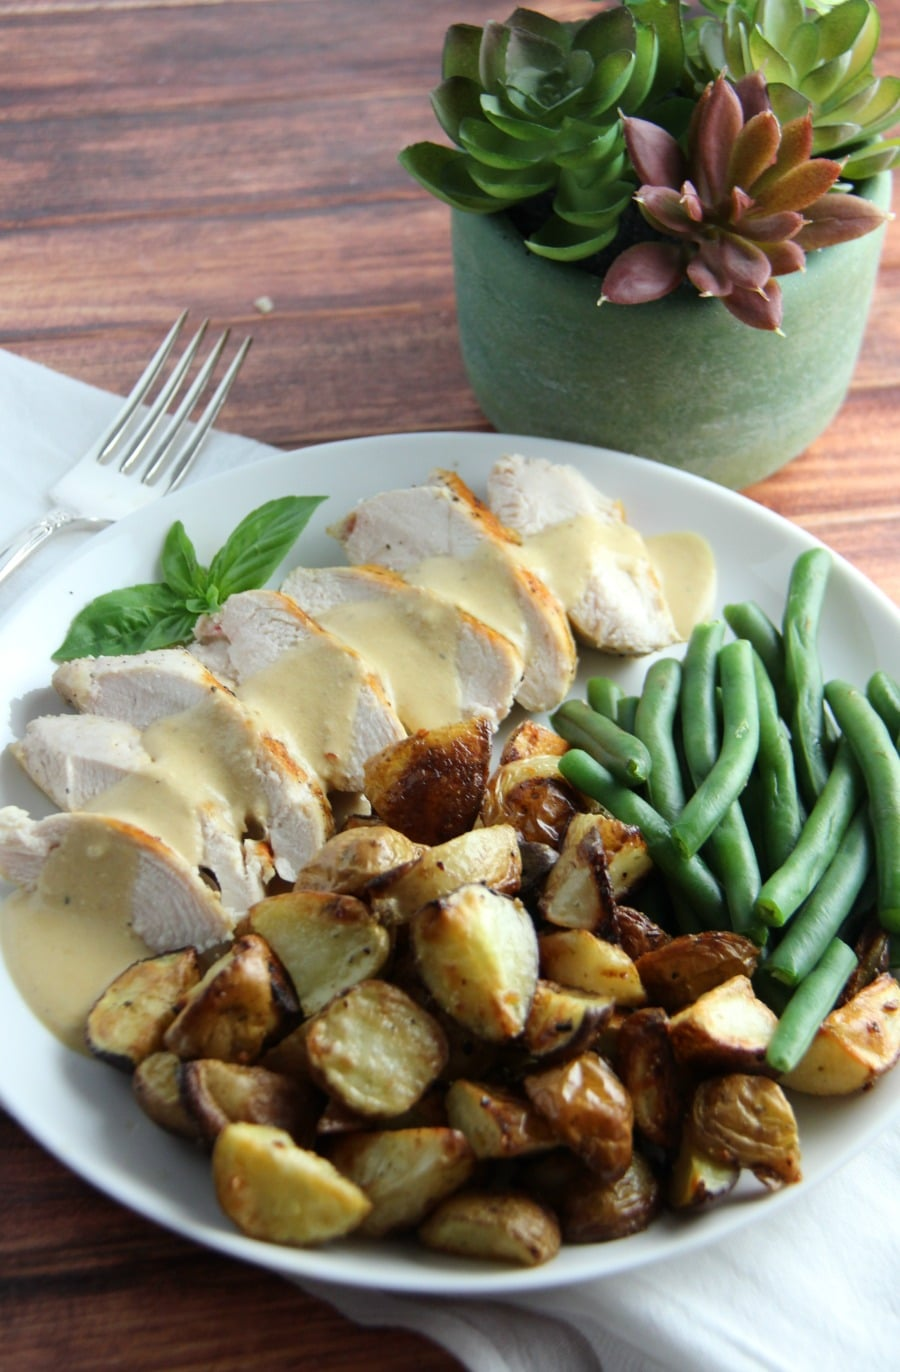 Pan Seared Chicken with Green Beans, Roasted Potatoes and a Creamy Mustard Sauce